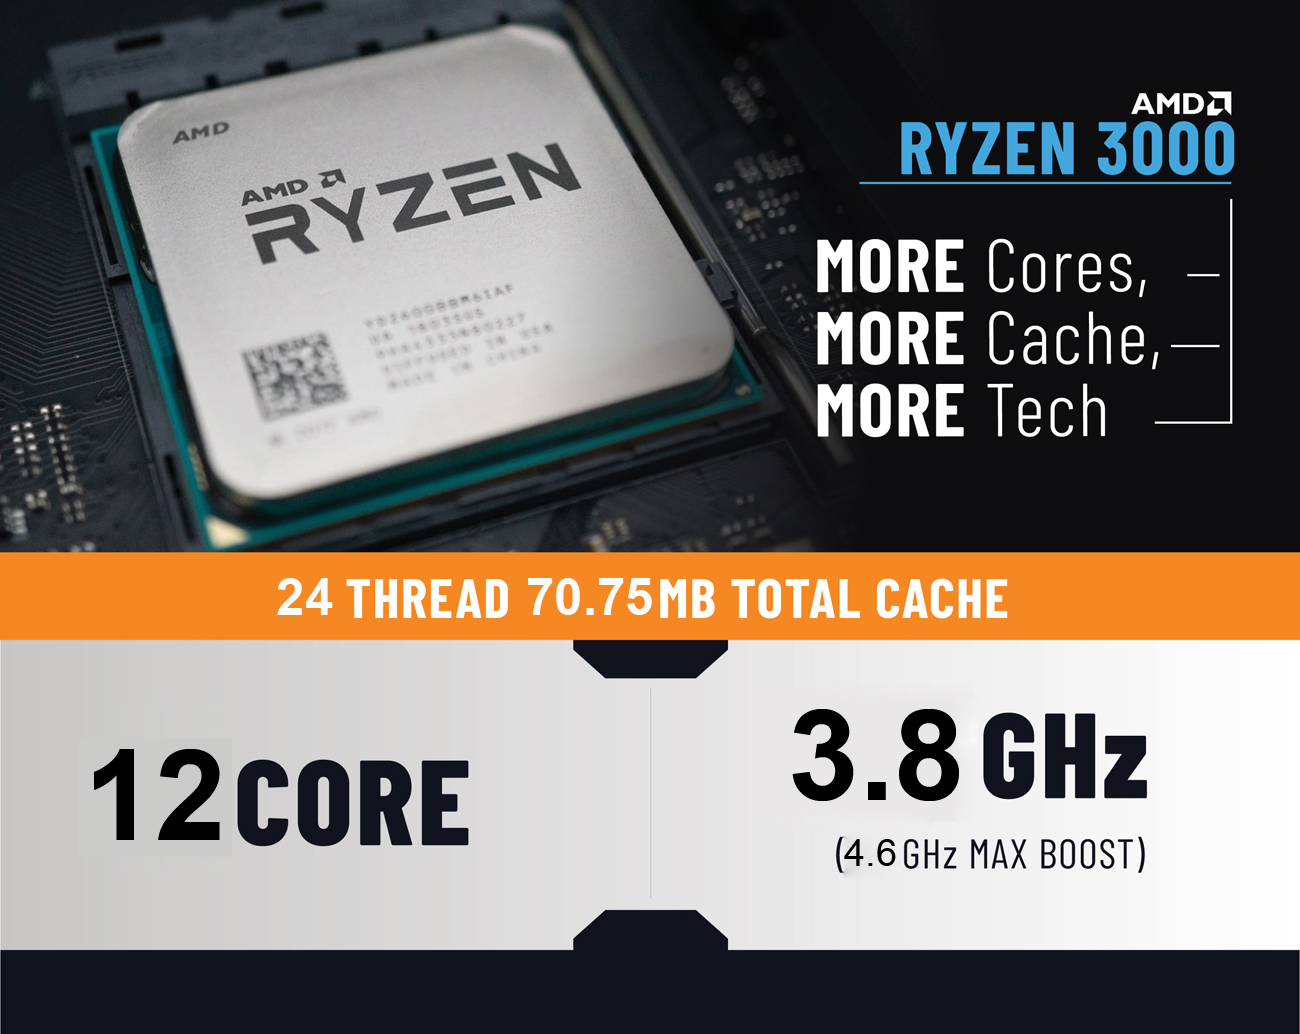 The Ryzen 3000 processor chip has text next to reading more cores, more cache, and more tech. Under it is the specific specifications for the processor for AMD Ryzen 9 3900X.